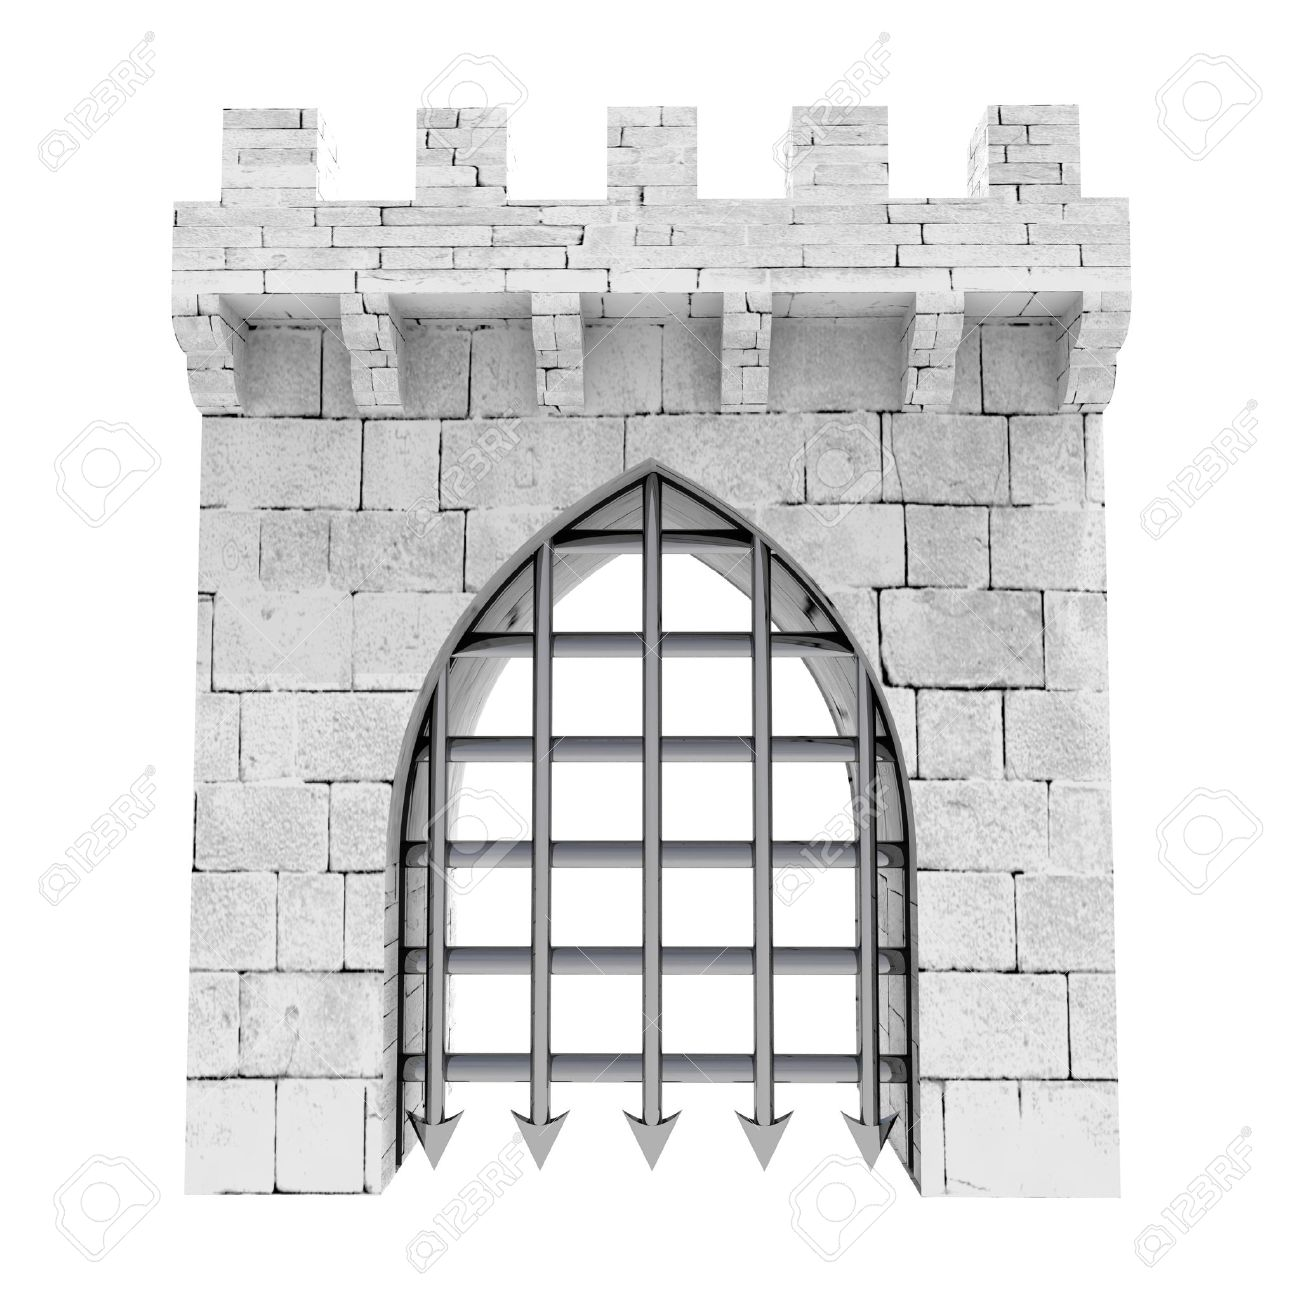 Castle gate clipart.